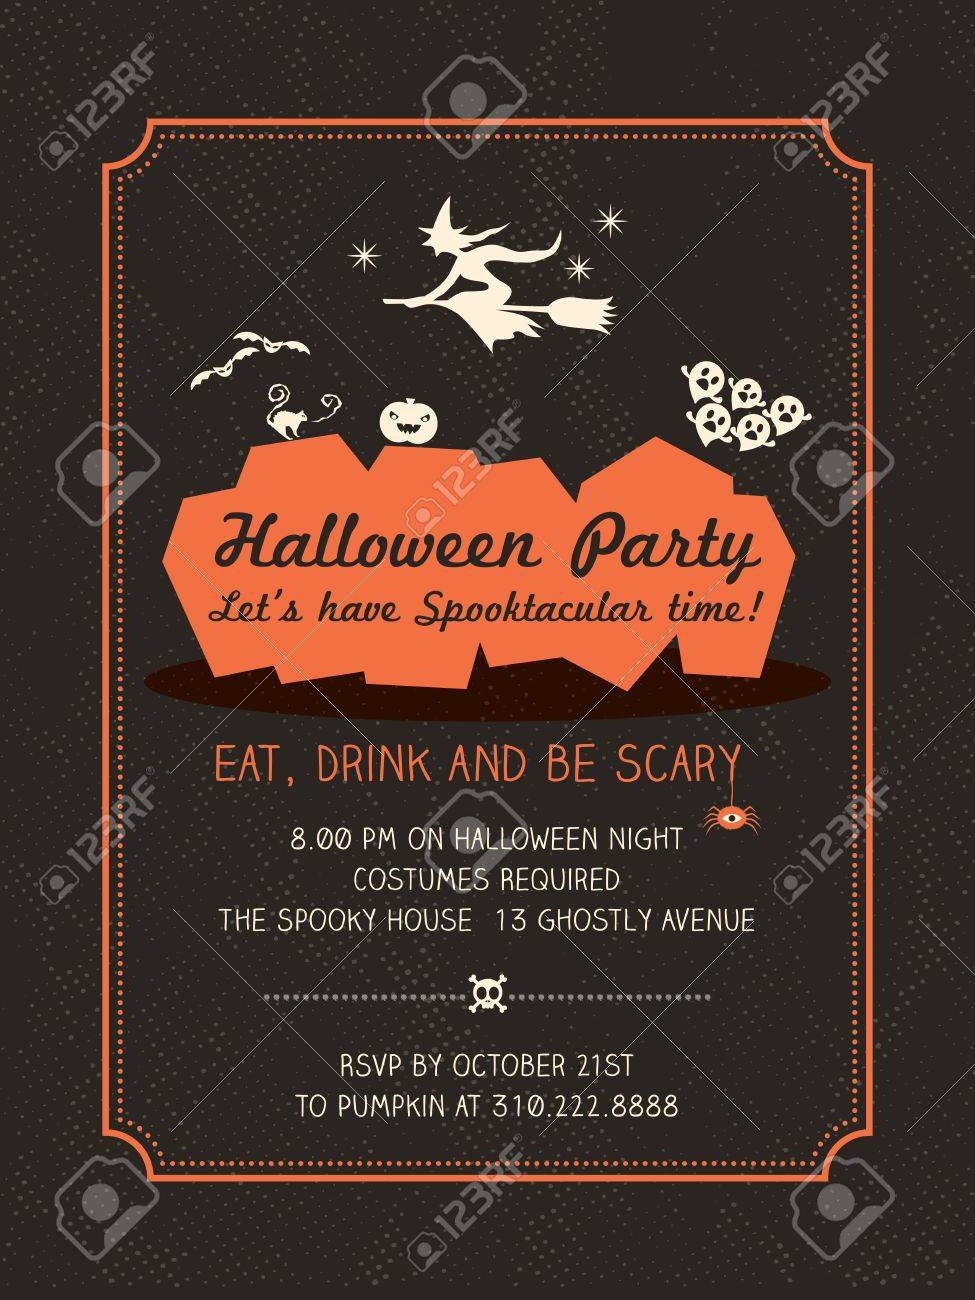 Halloween Party Invitation Template For Card-Poster-Flyer Royalty ...